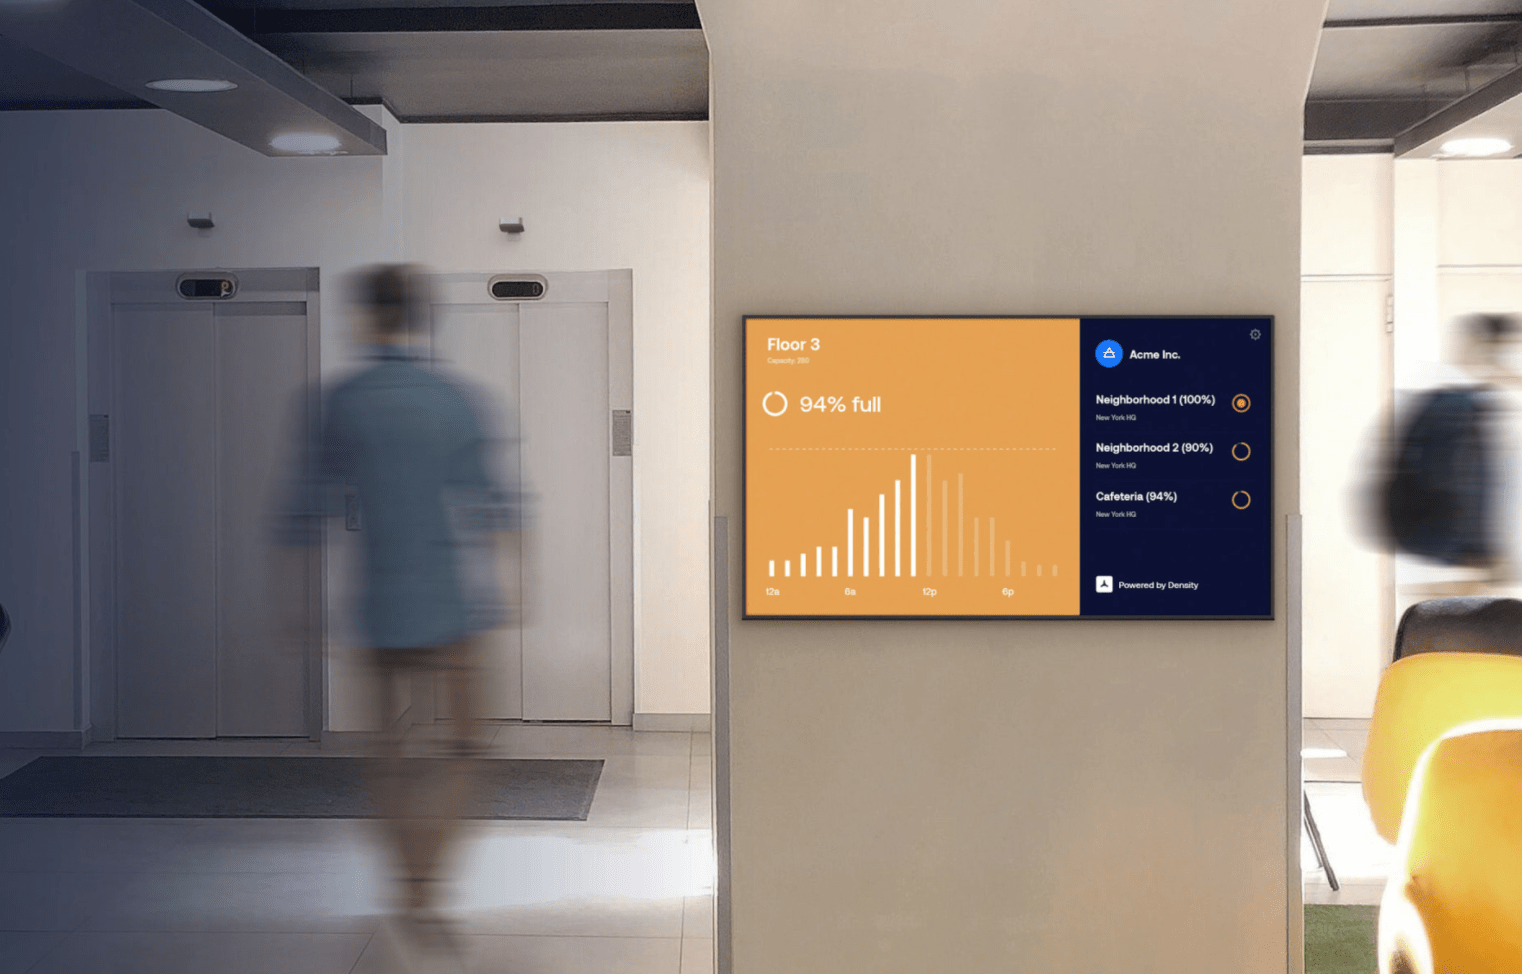 Zoom brings new features to Zoom Rooms